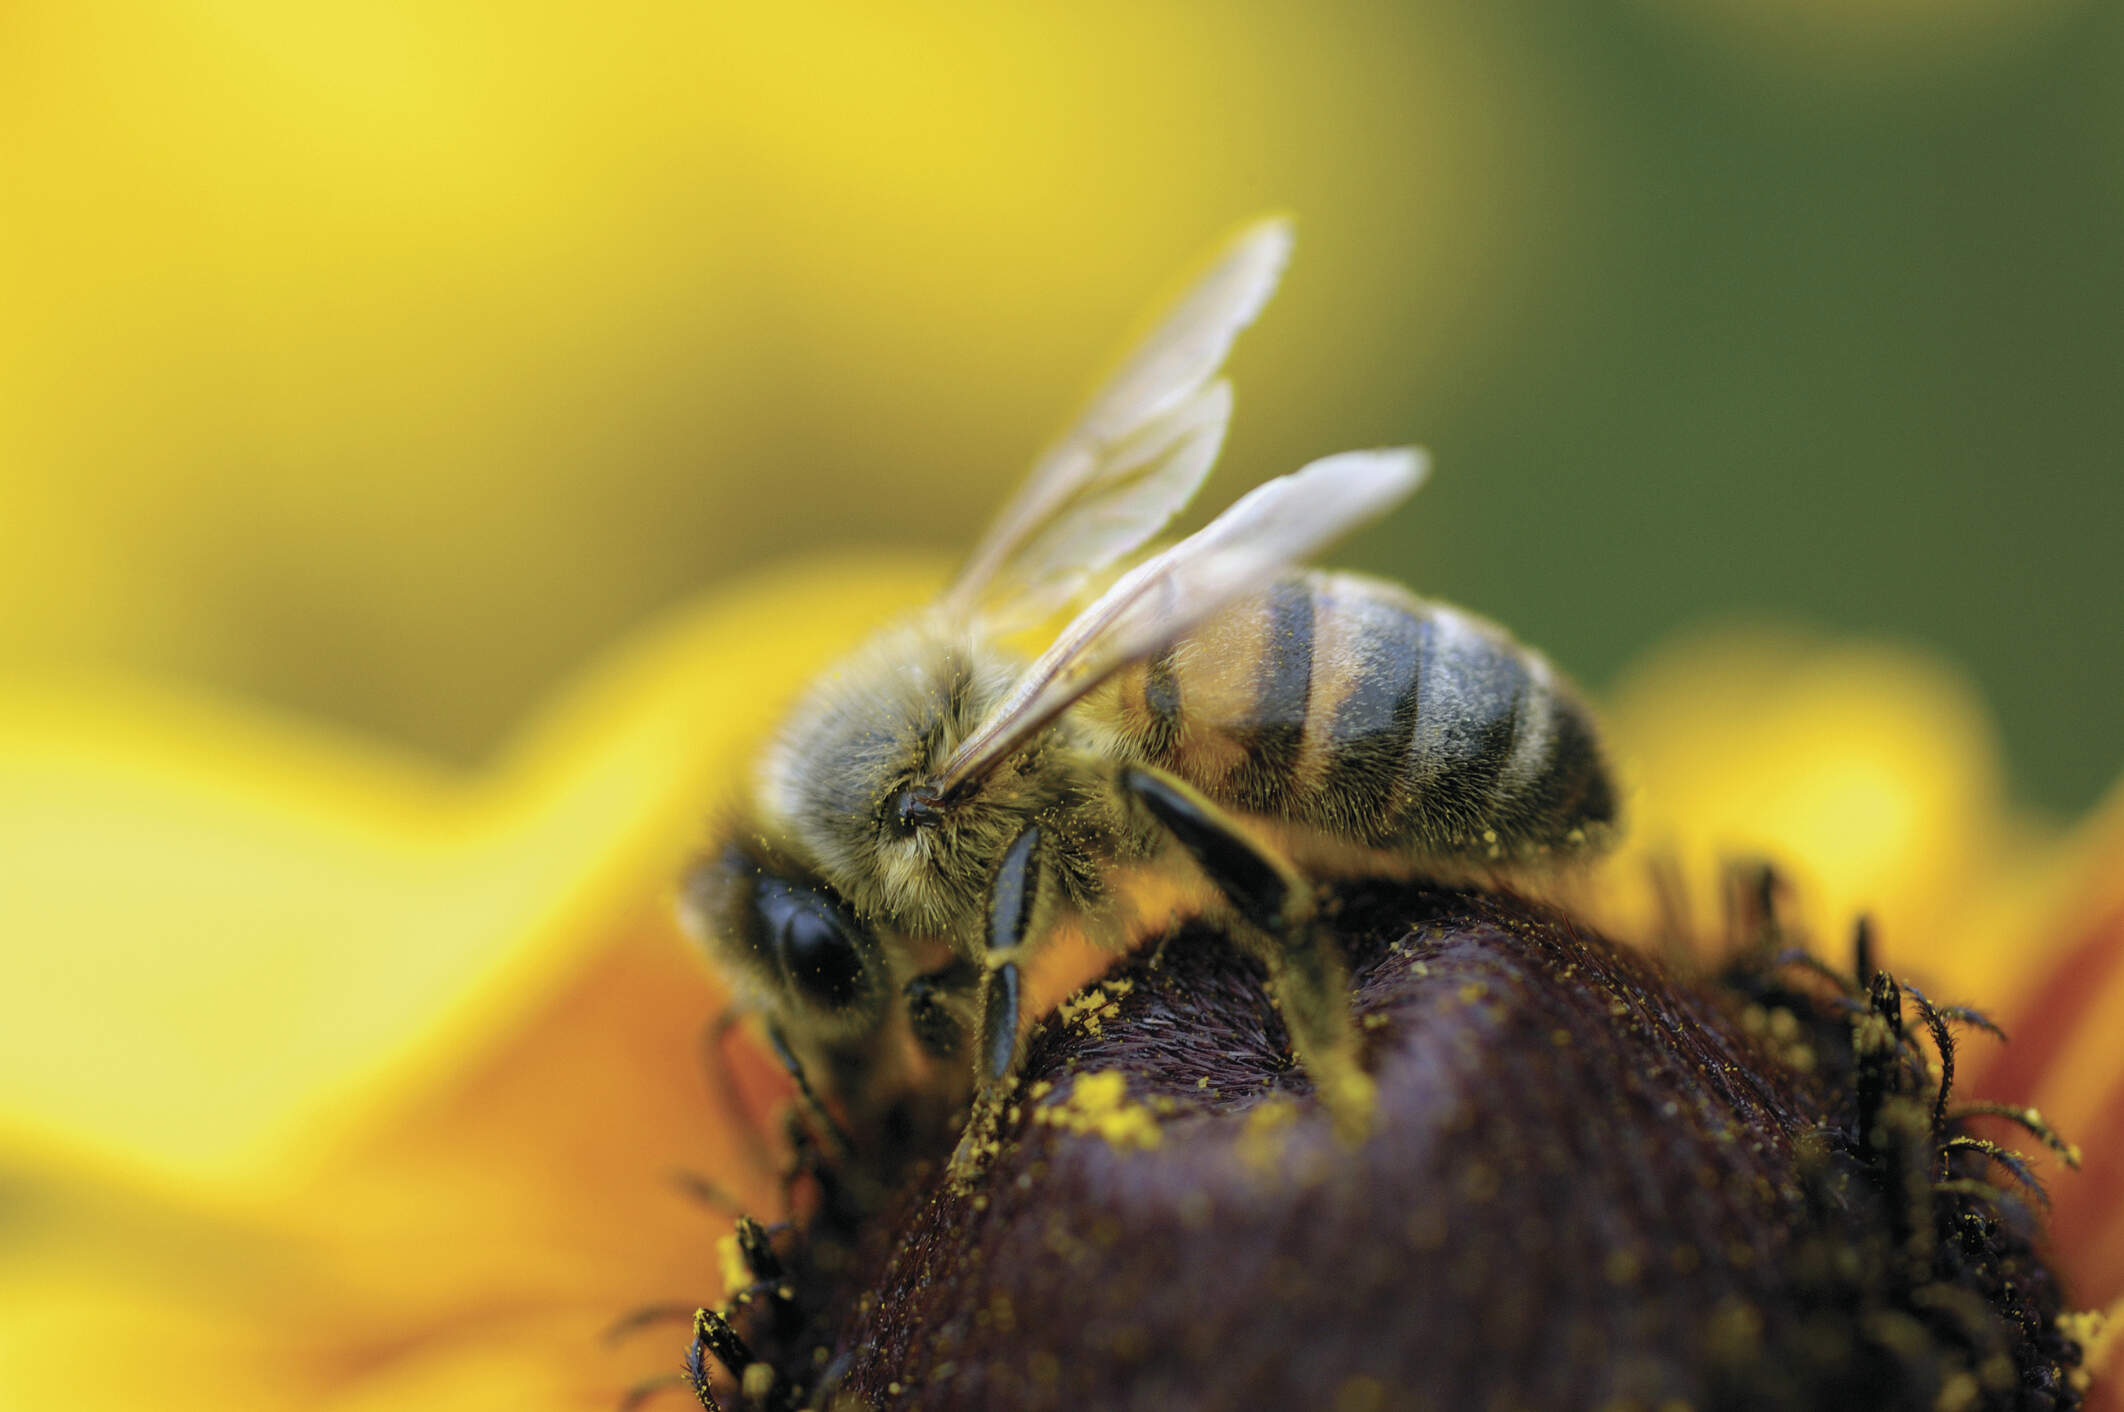 WE ARE ALL WORKER BEES IN THE HIVE OF LIFE